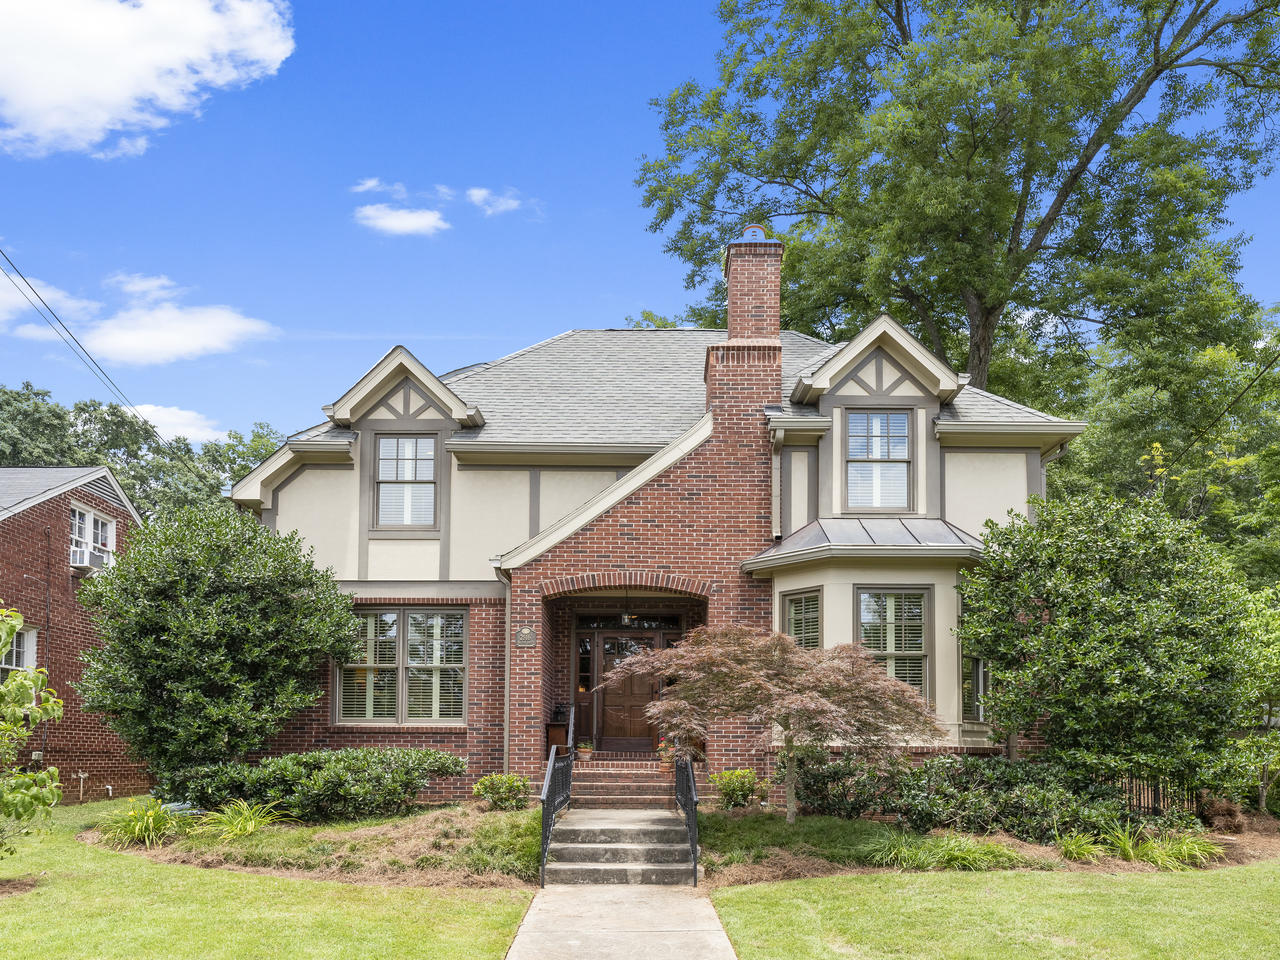 2516 Alston Dr SE Atlanta GA-080-082-GLM00010436-MLS_Size.jpg